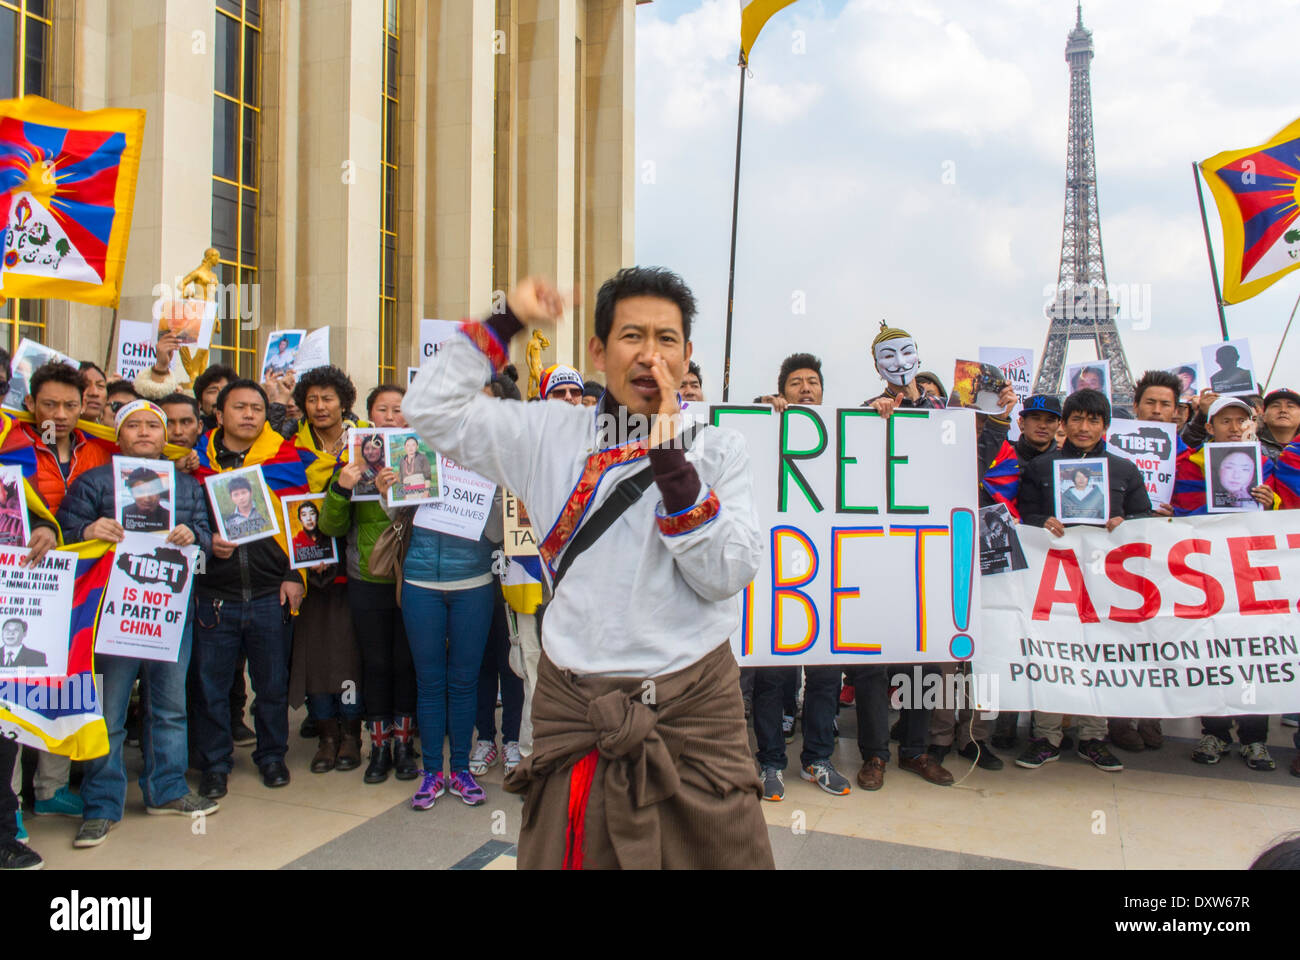 The Tibetan, Taiwanese Ethnic Communities of France, and Friends called for French citizens to mobilize during the visit of Chinese President in Paris, Holding Protest Signs, Citizens rights protests Stock Photo